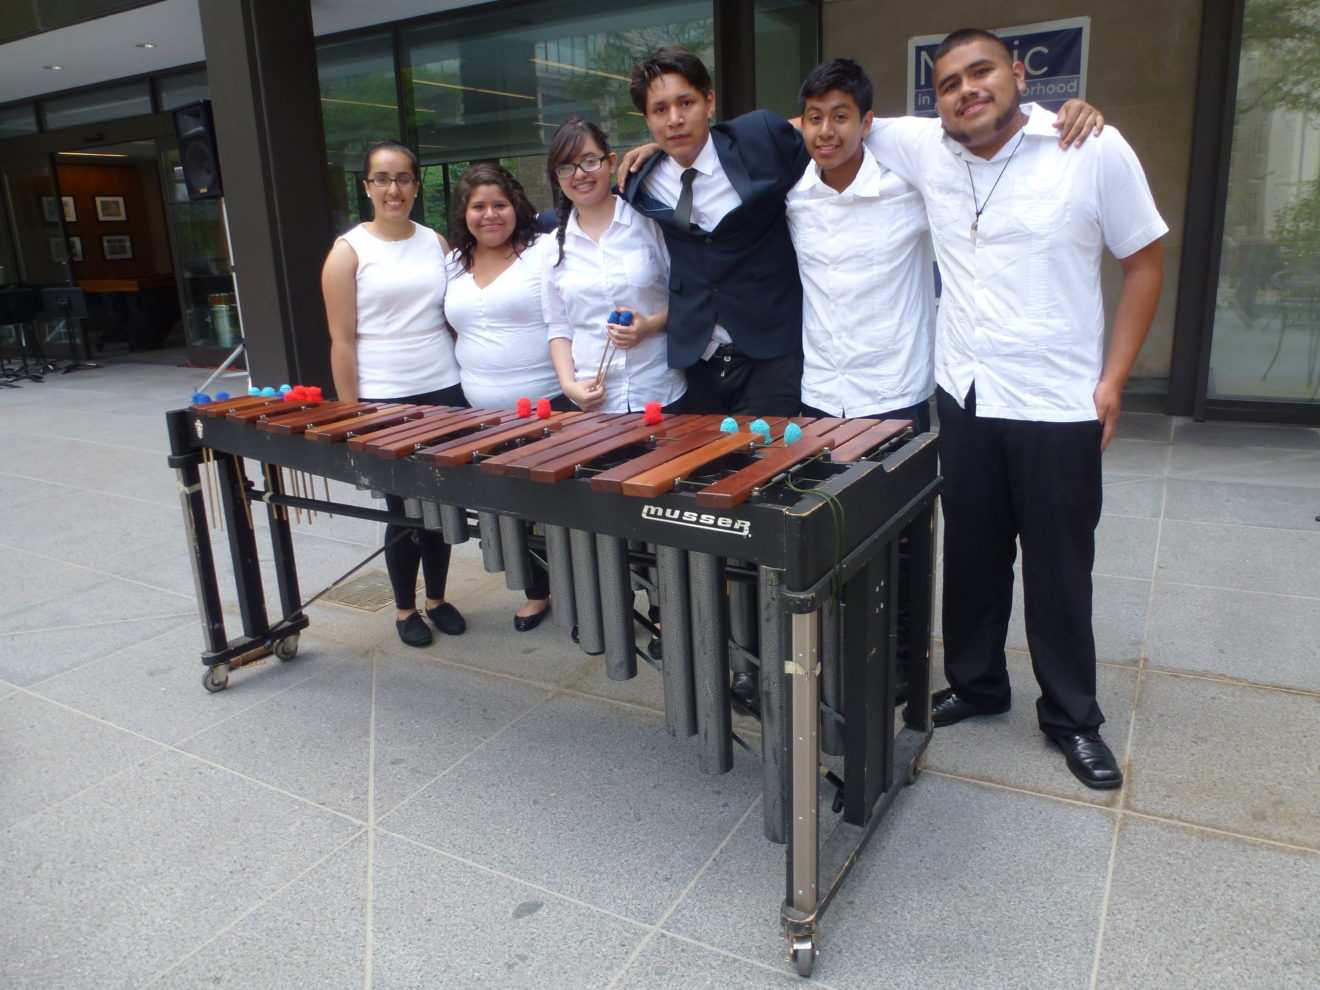 Marimba Performers enjoying the outdoor and getting ready for their concert.